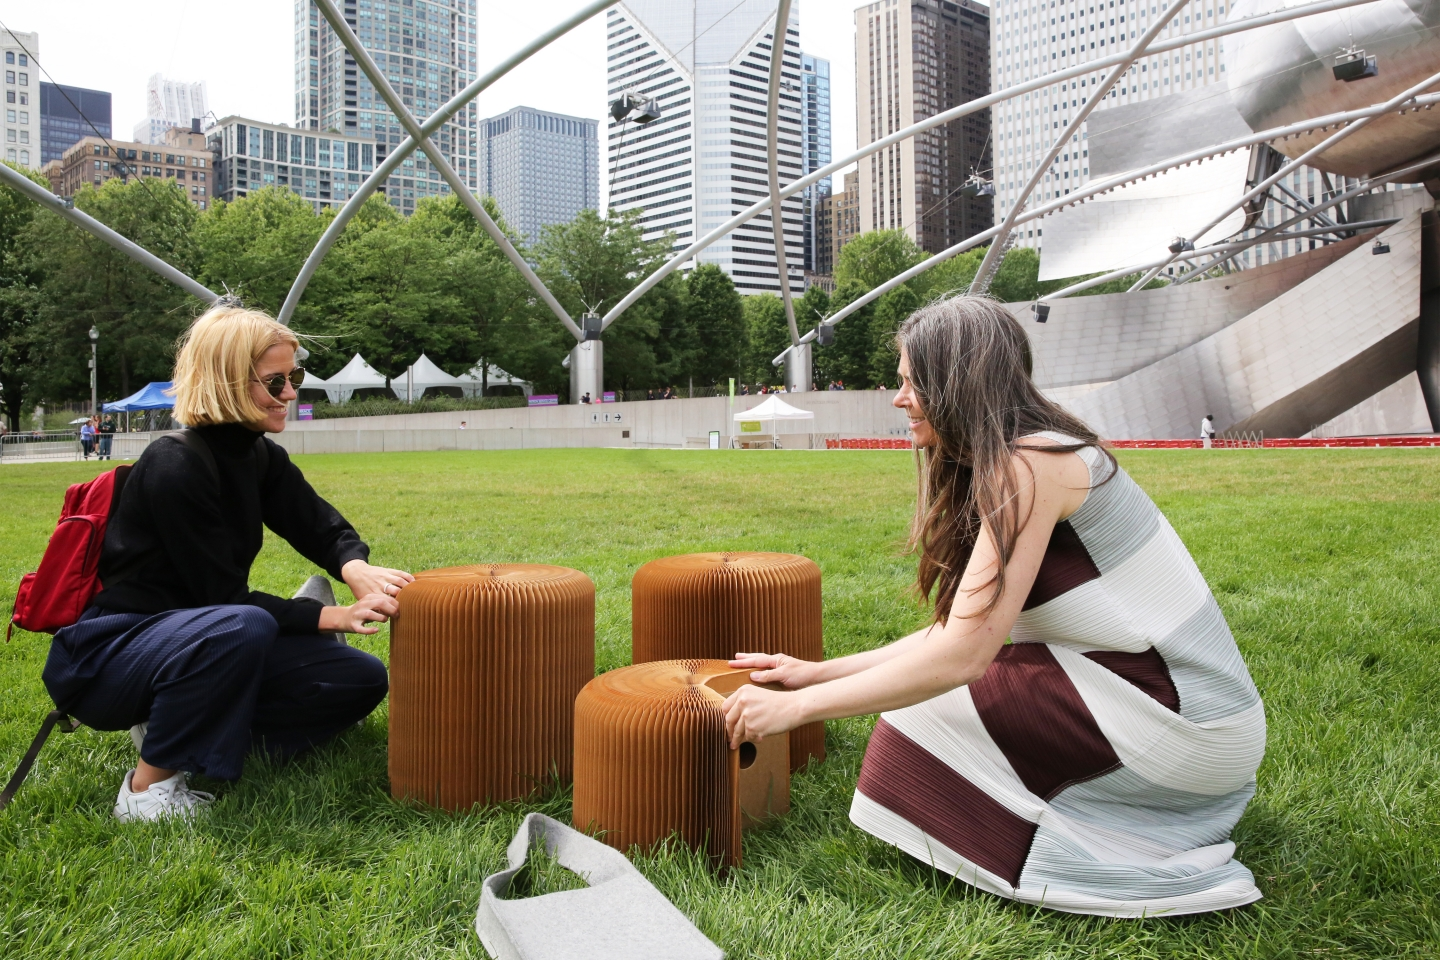 picnic in Chicago's Millenium Park using - paper stool by molo softseating